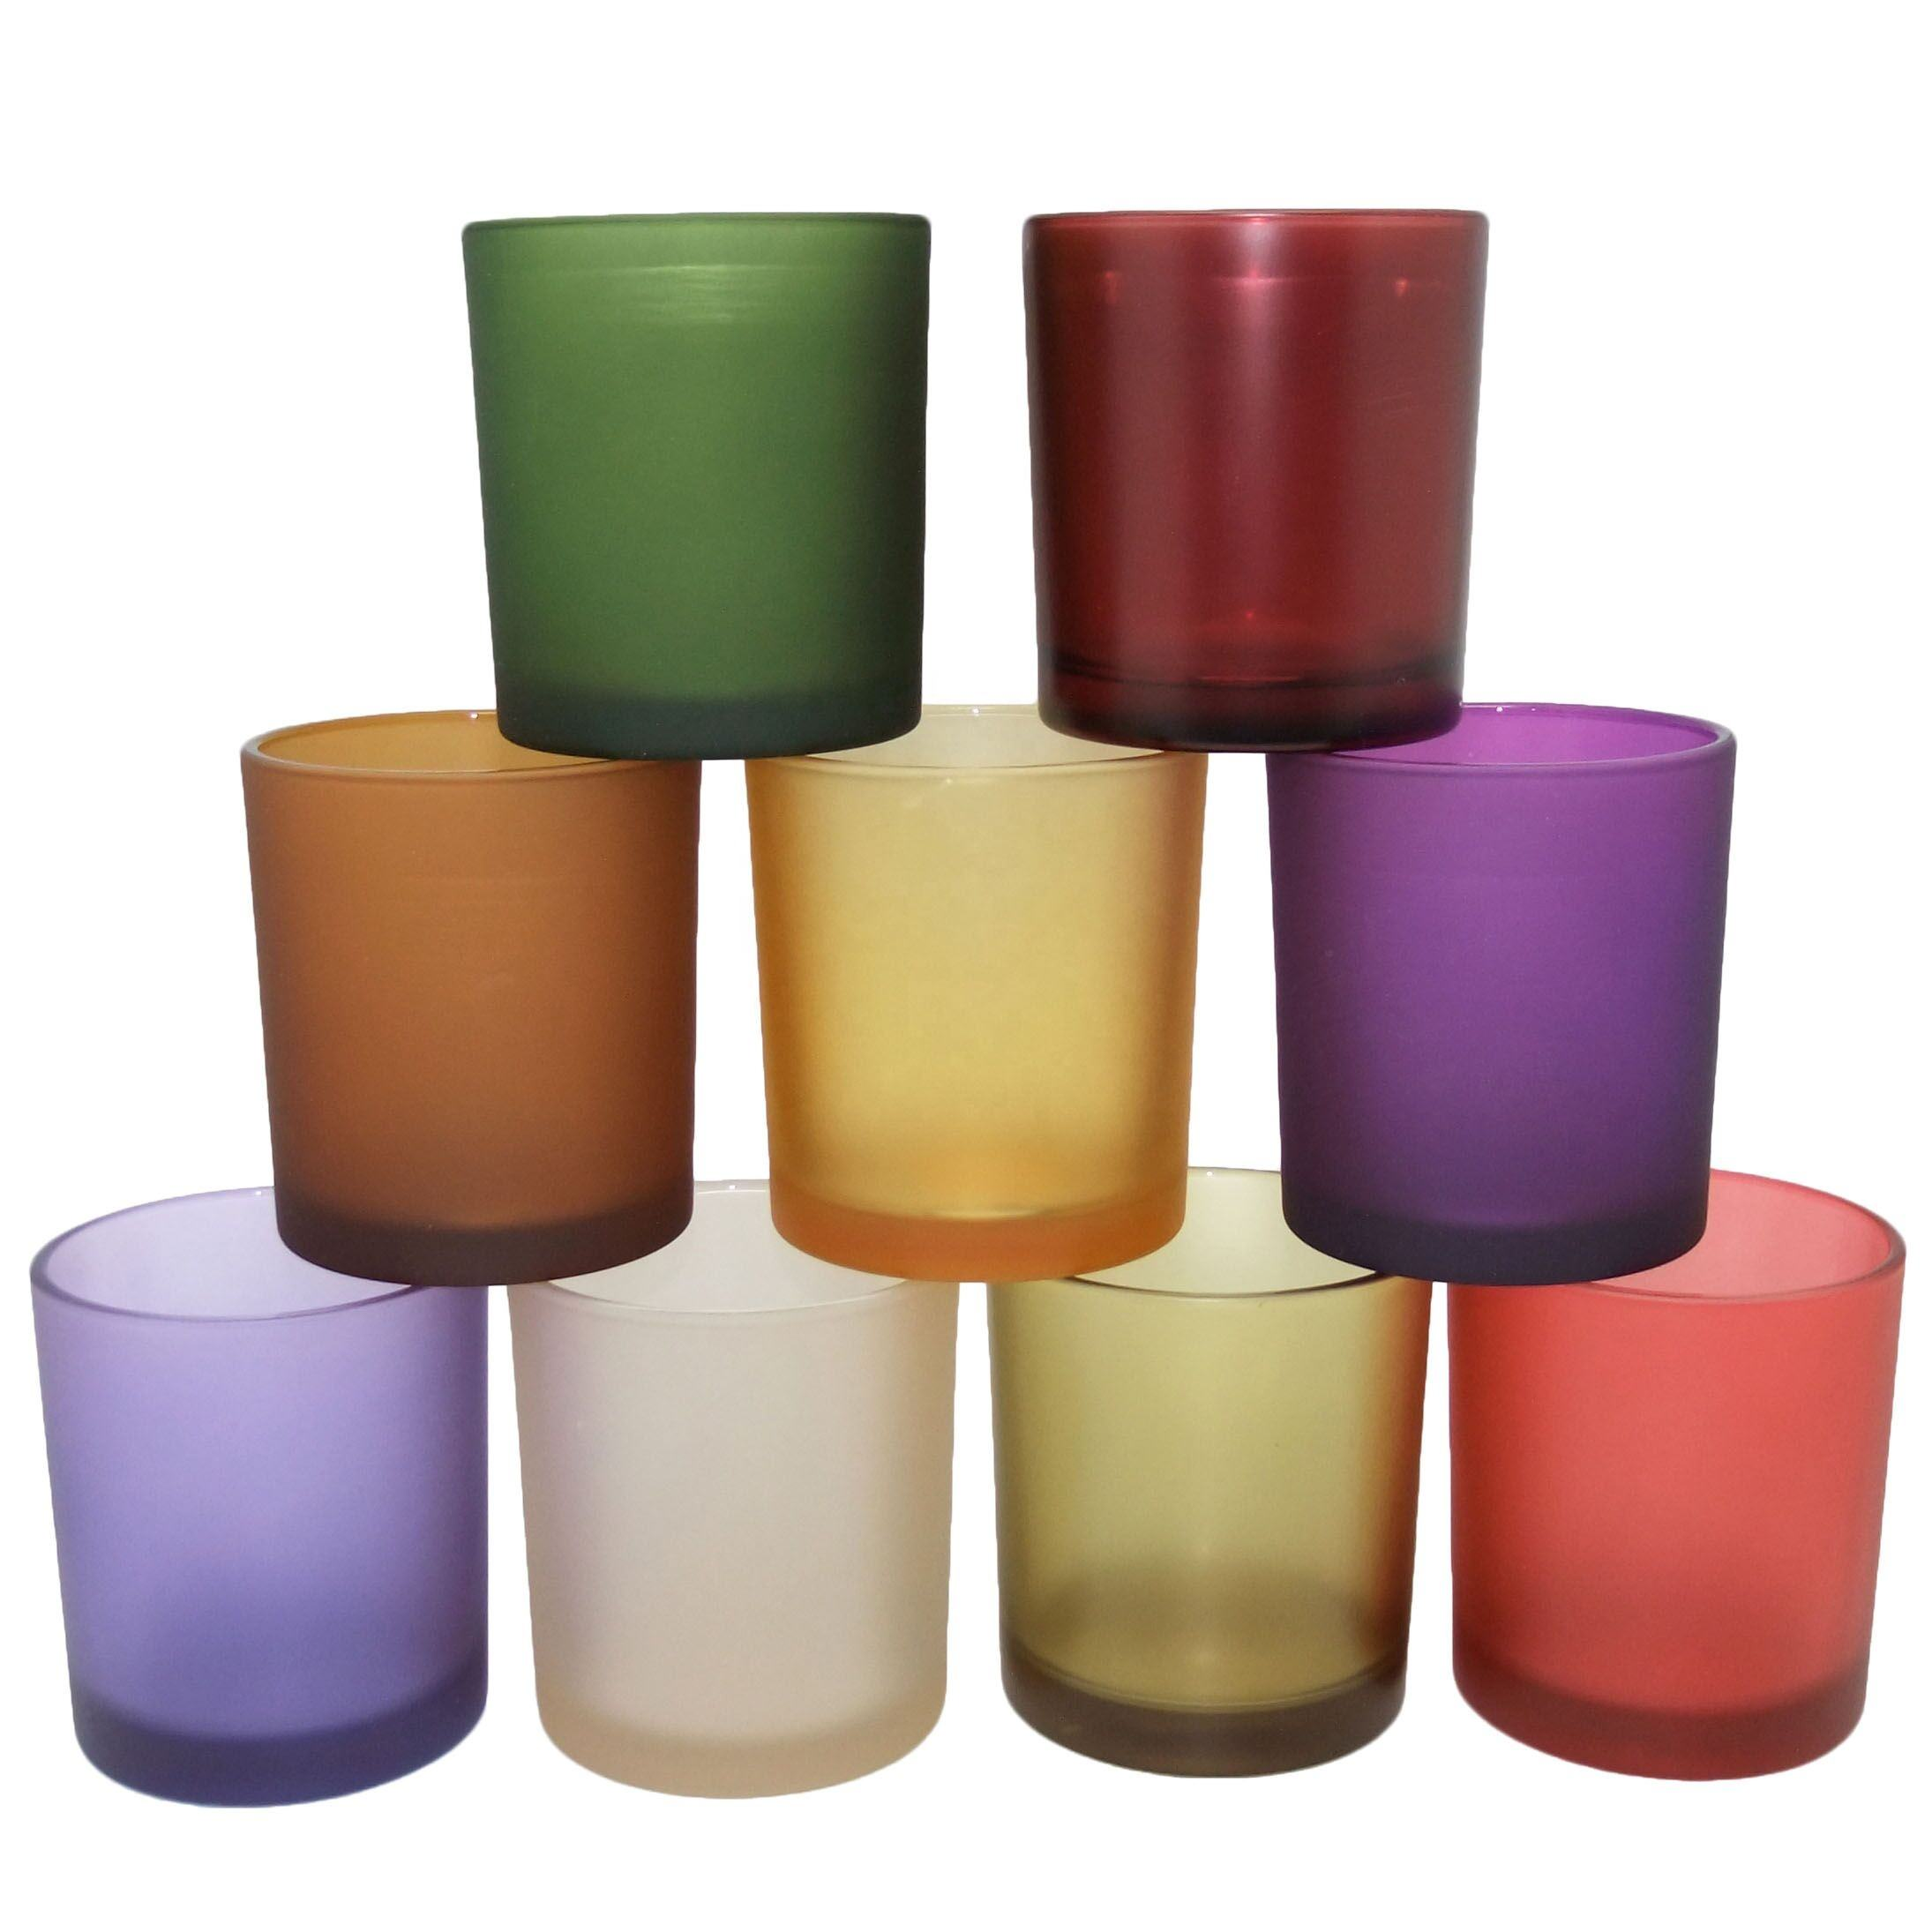 5.5oz glass containers for candles matte colored wholesale candle vessels frosted candle glass for home decor Haodexin